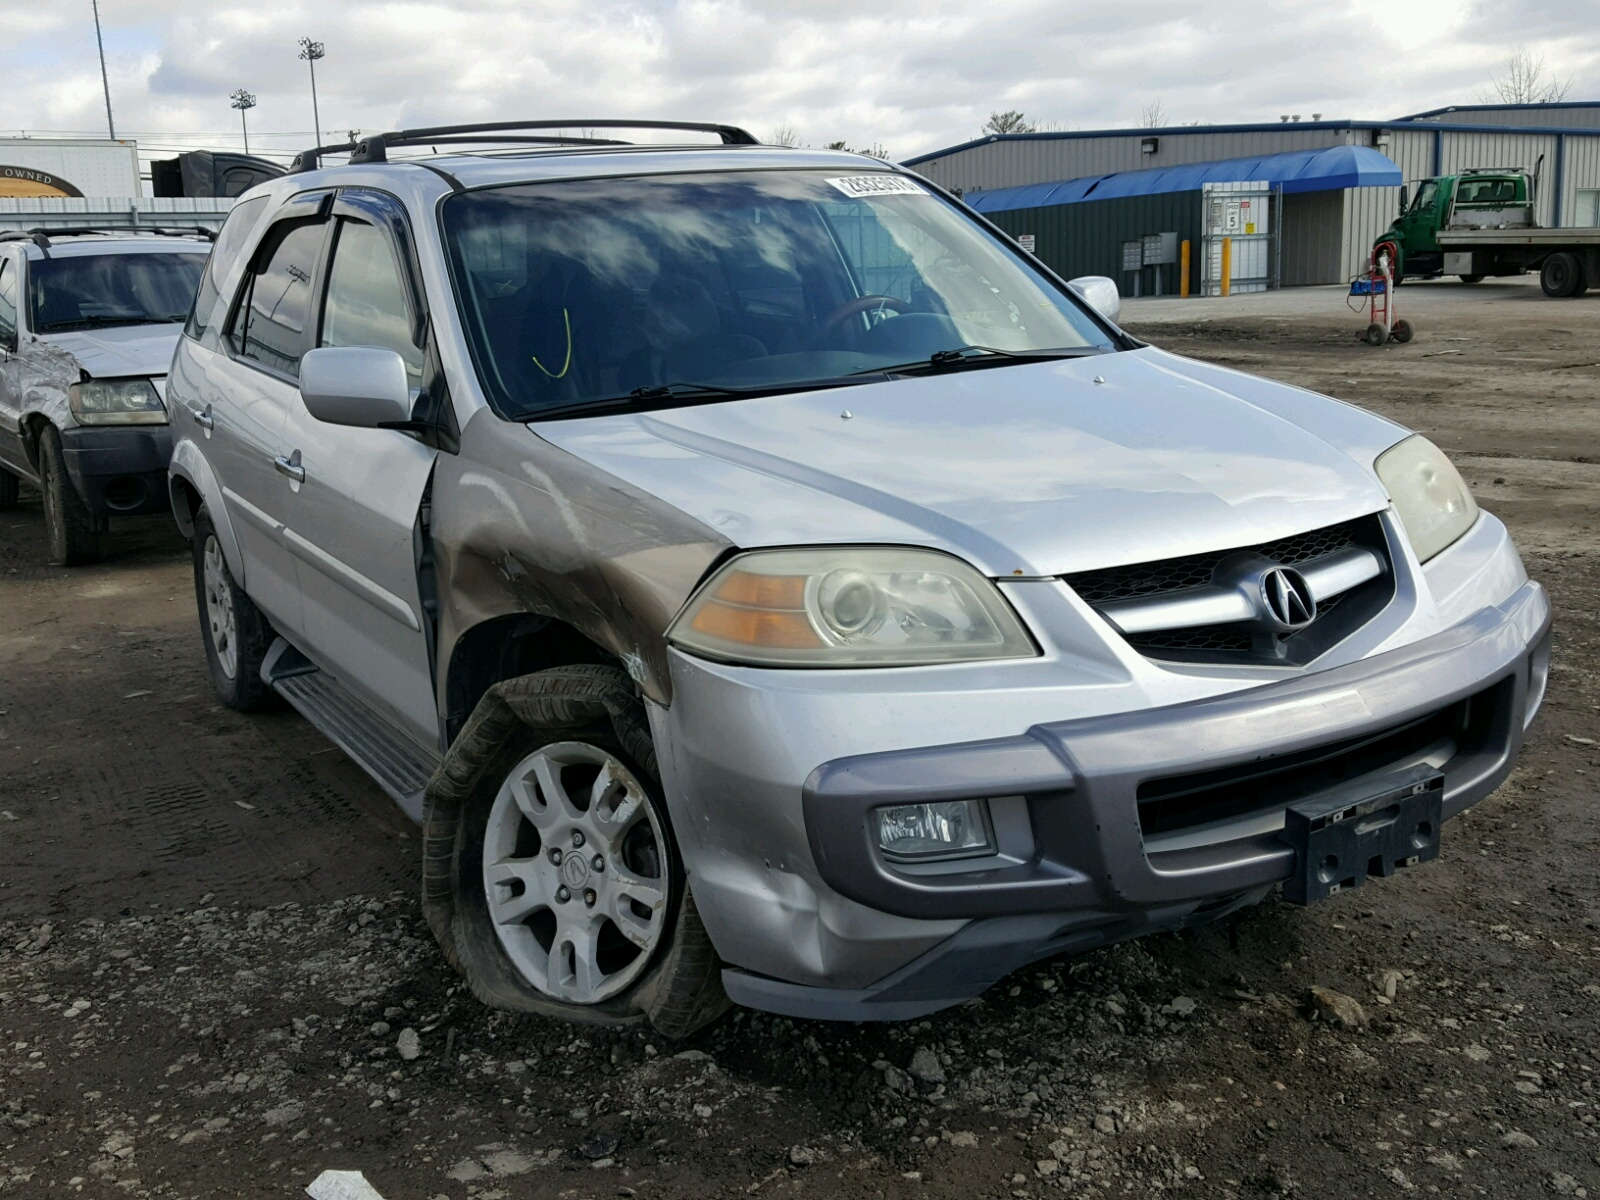 HNYDH SILVER ACURA MDX TOURIN On Sale In MD - Acura mdx 2005 for sale